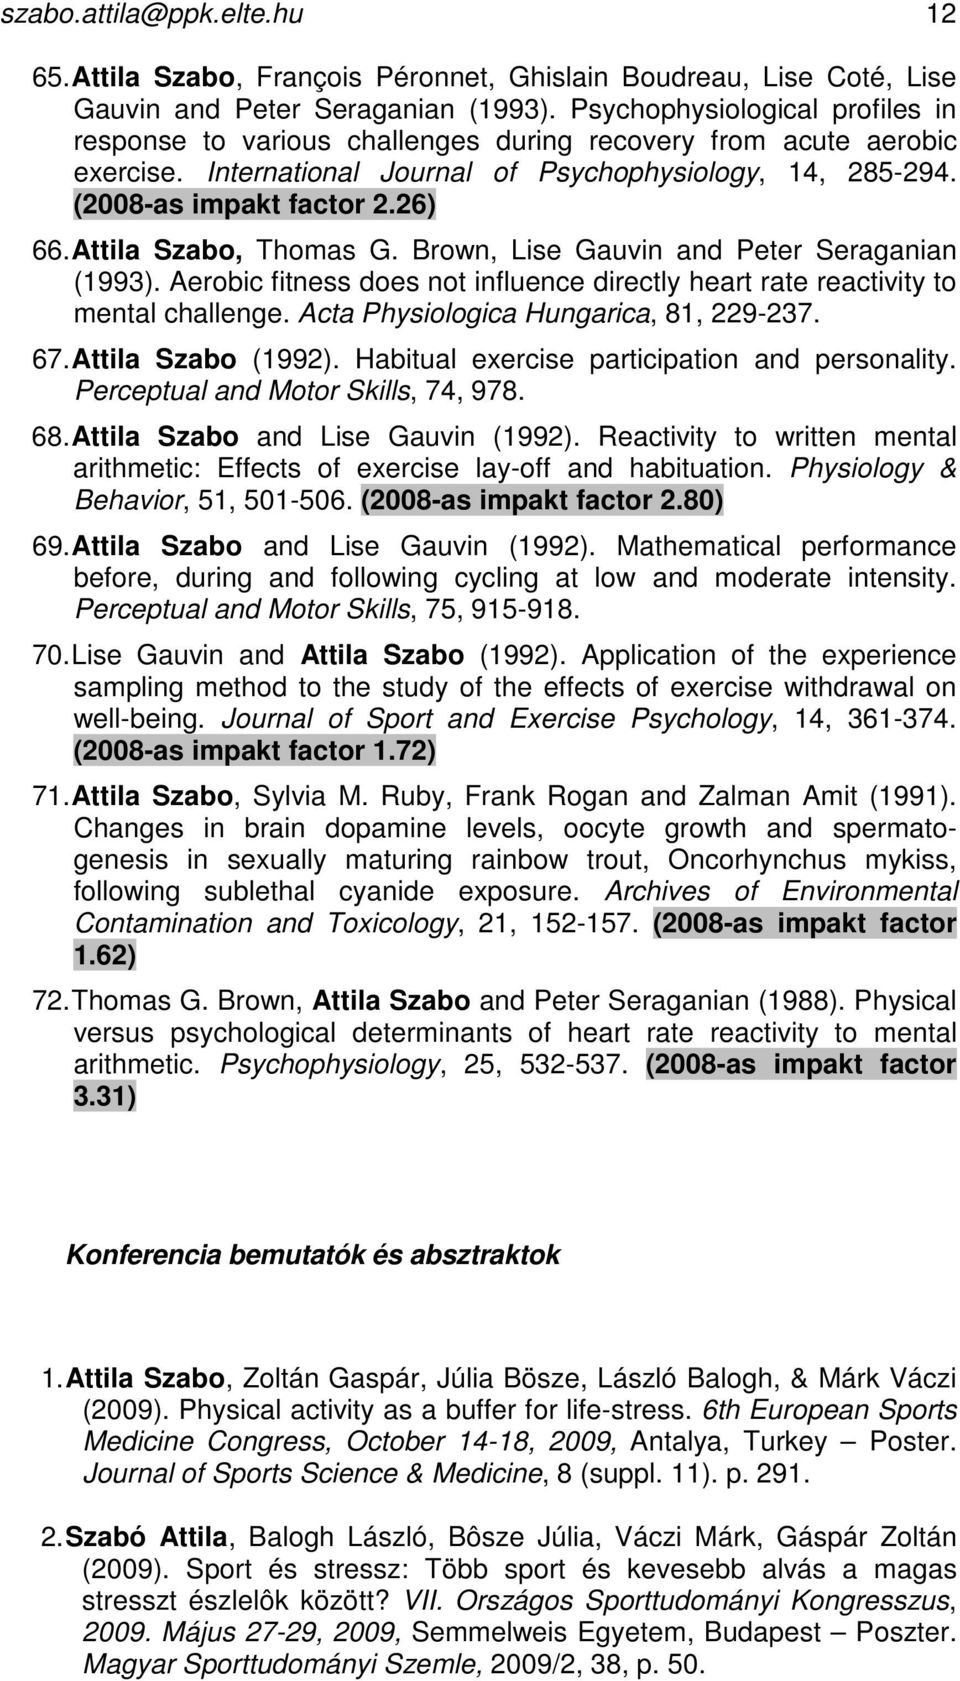 Attila Szabo, Thomas G. Brown, Lise Gauvin and Peter Seraganian (1993). Aerobic fitness does not influence directly heart rate reactivity to mental challenge. Acta Physiologica Hungarica, 81, 229-237.